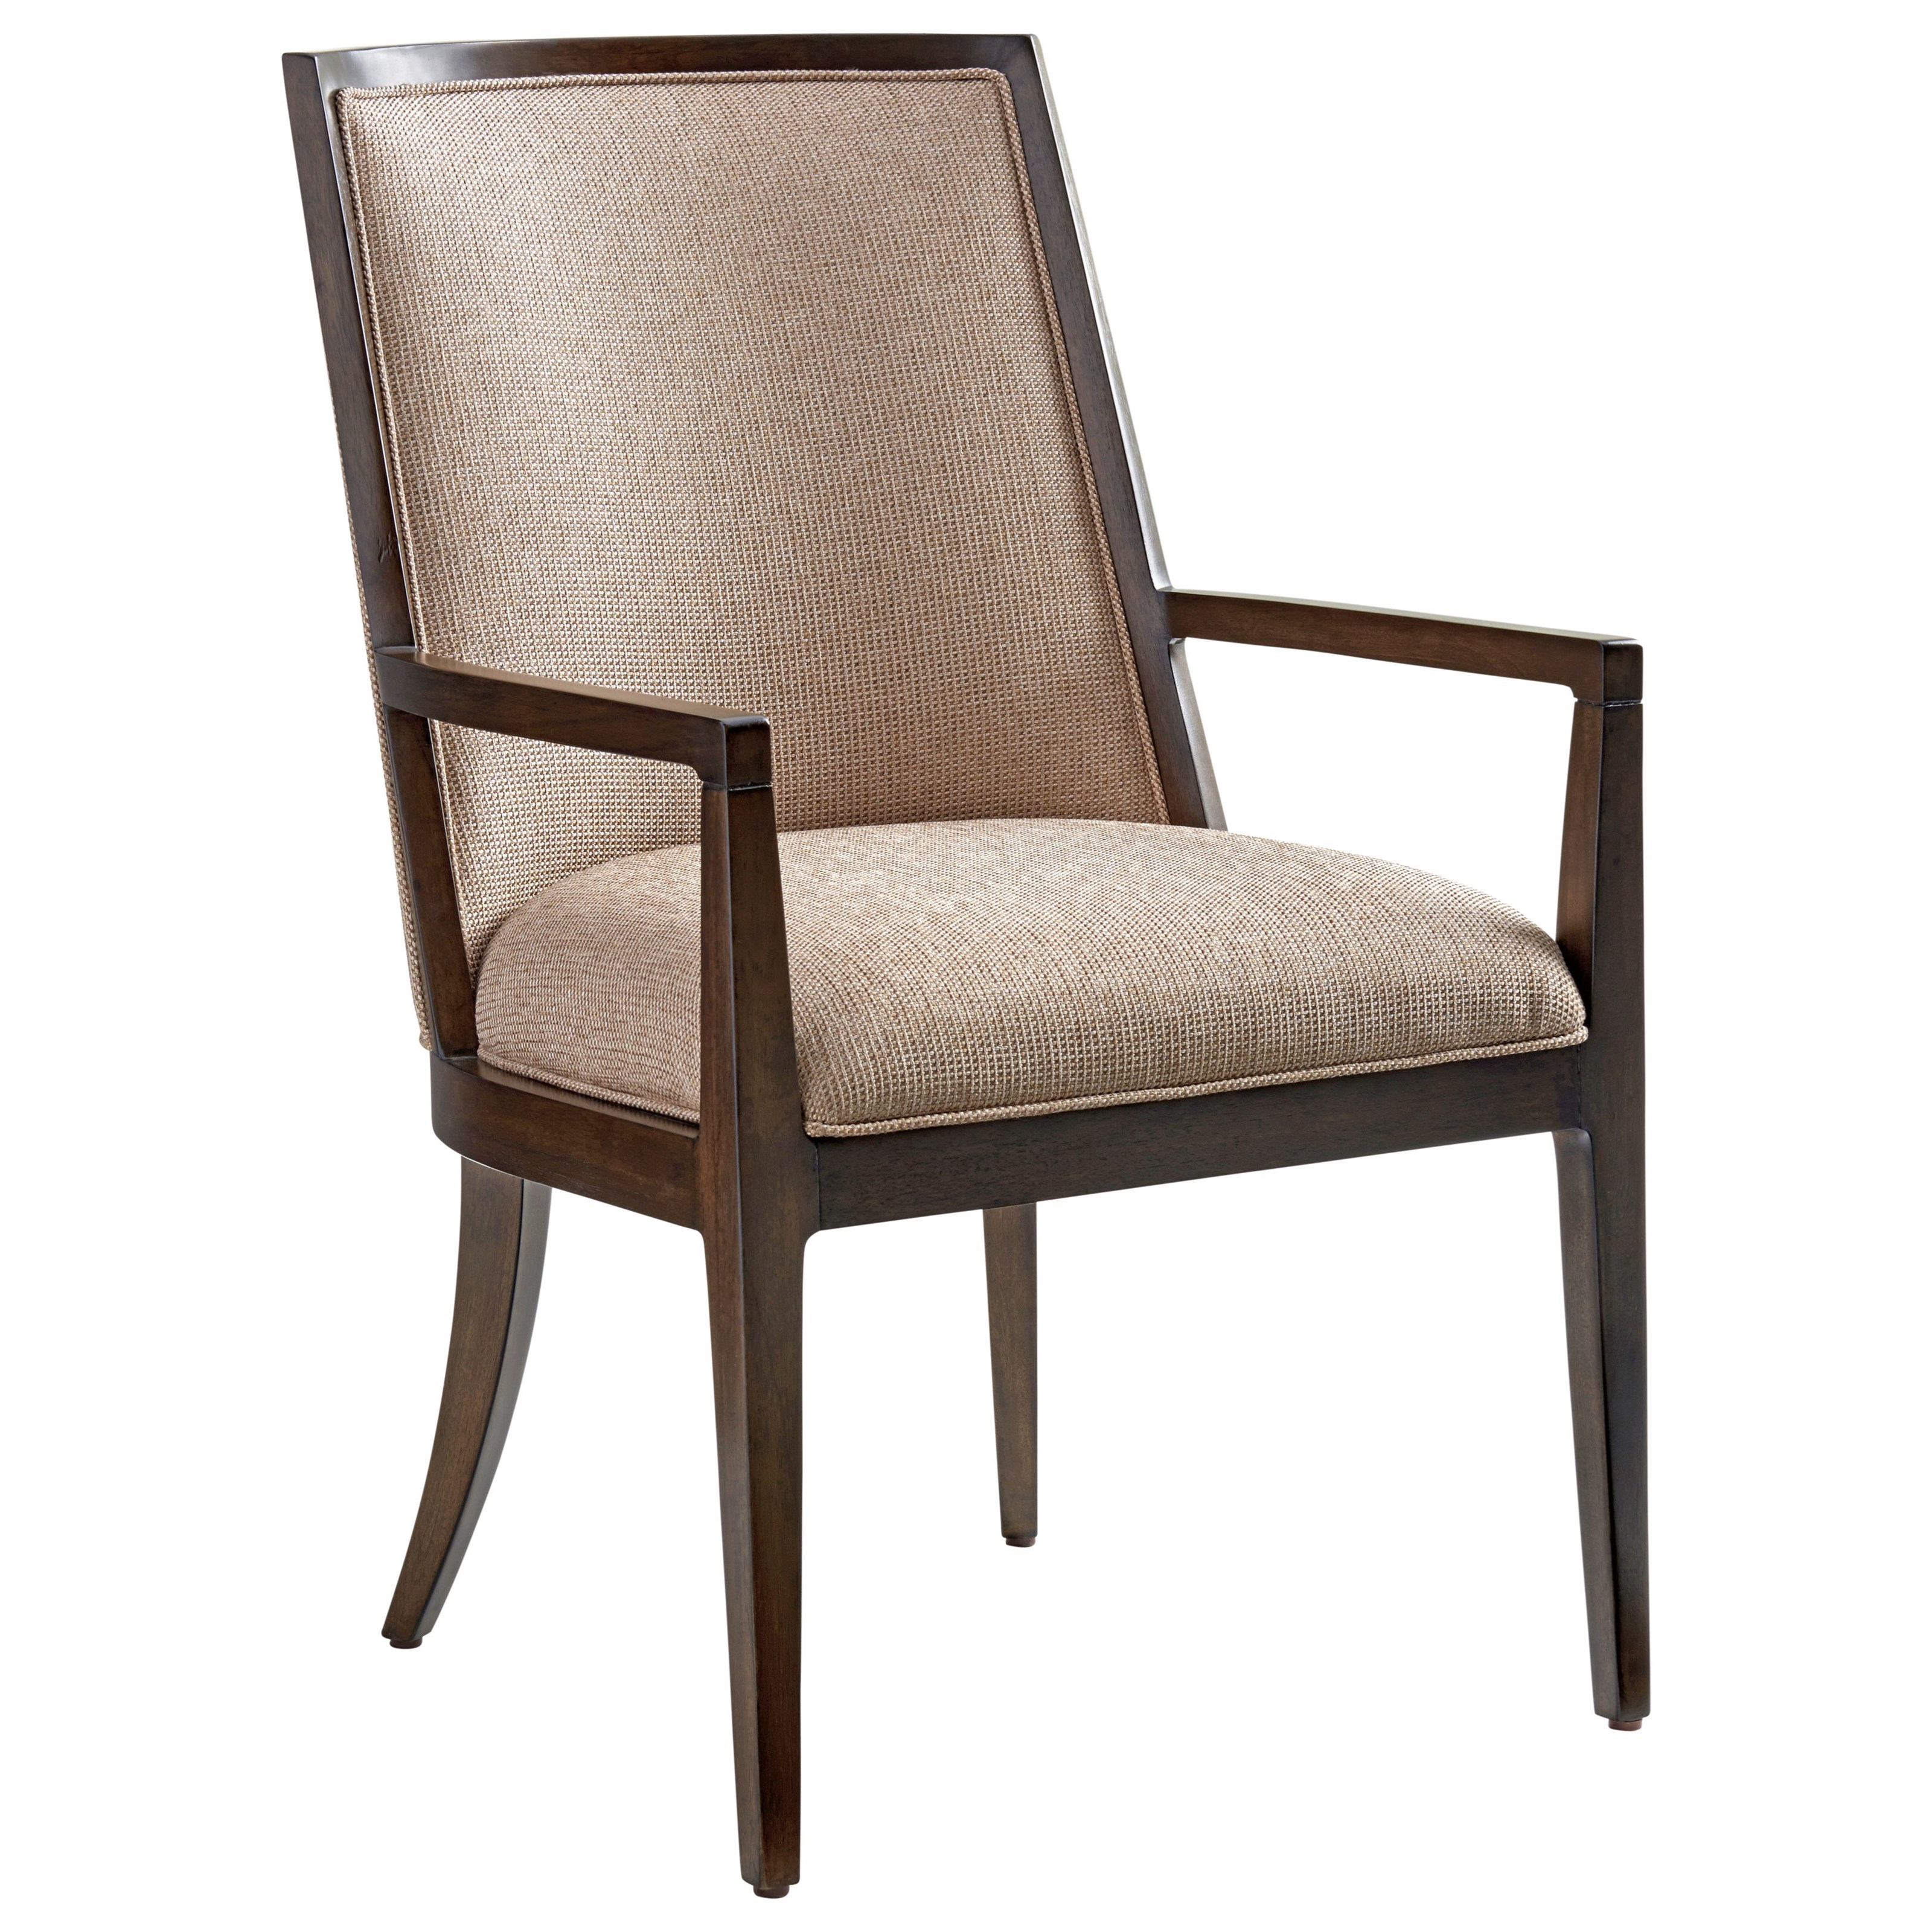 Lexington zavala ellipsis upholstered arm chair reeds for Upholstered arm dining chairs